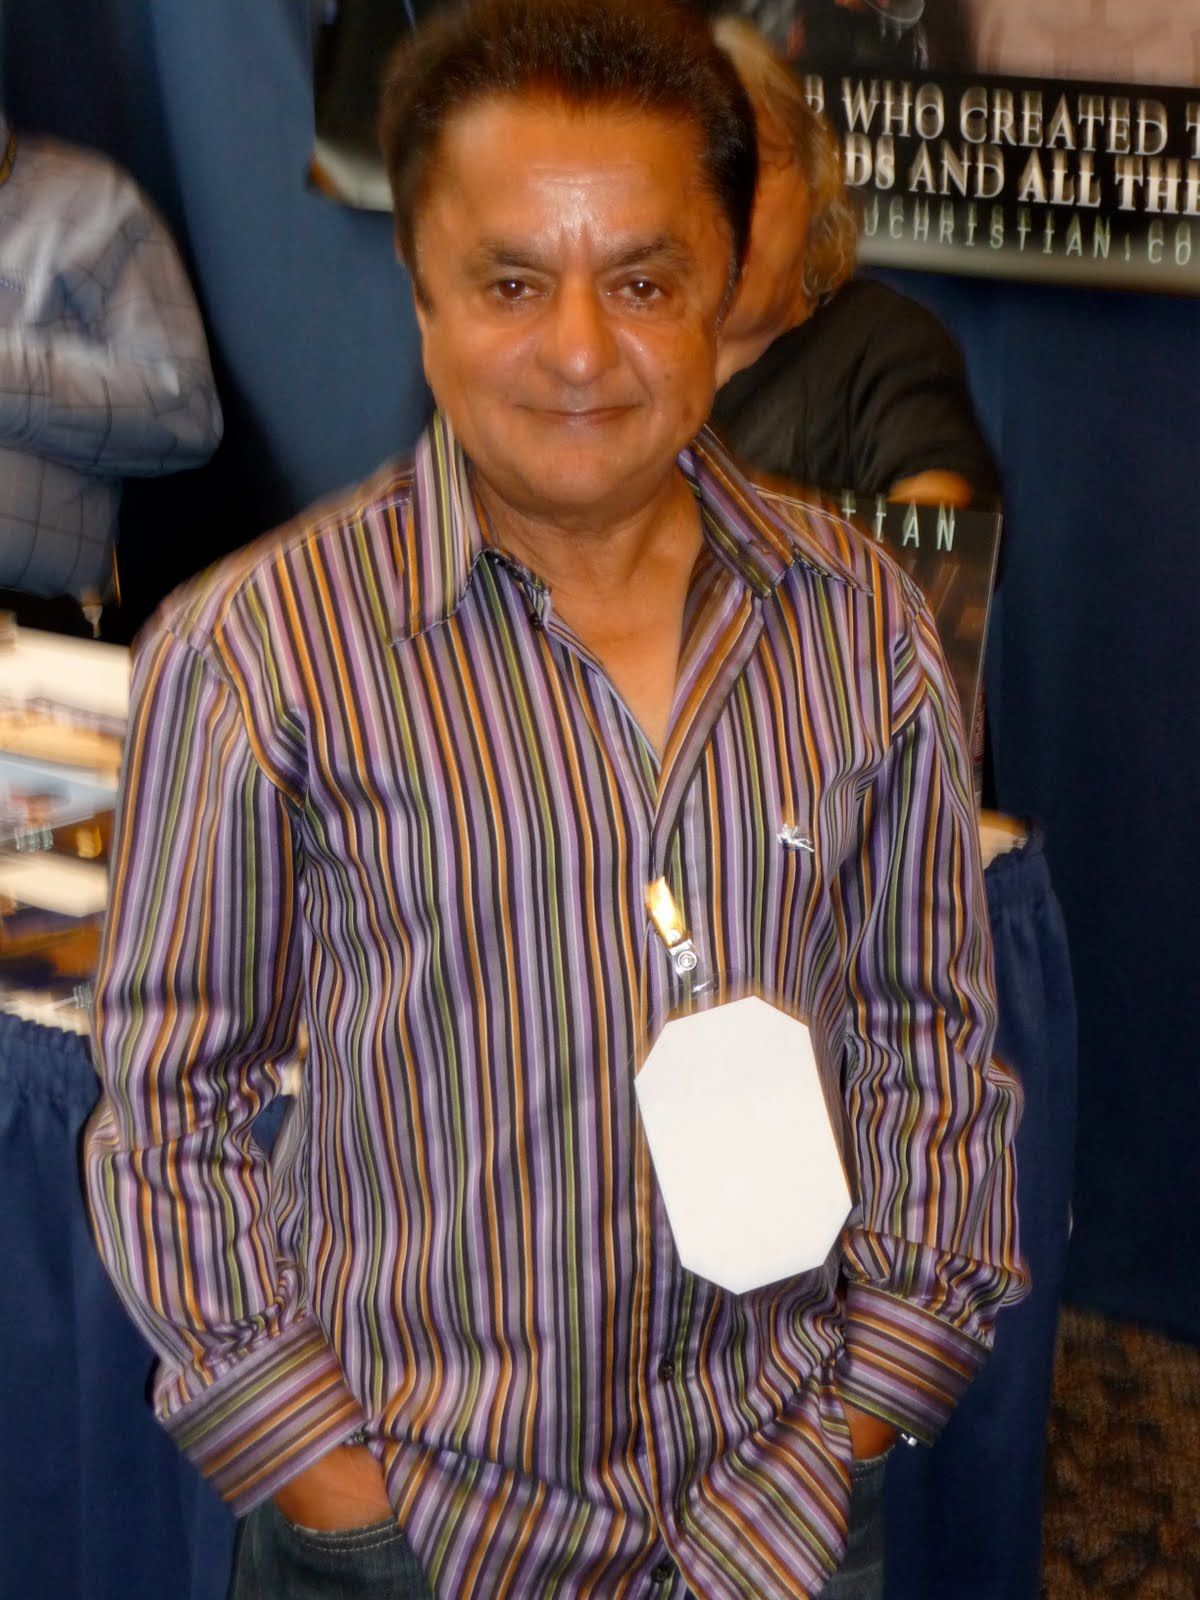 Deep Roy (n) at the Star Wars Celebration 2015. Roles and films ...